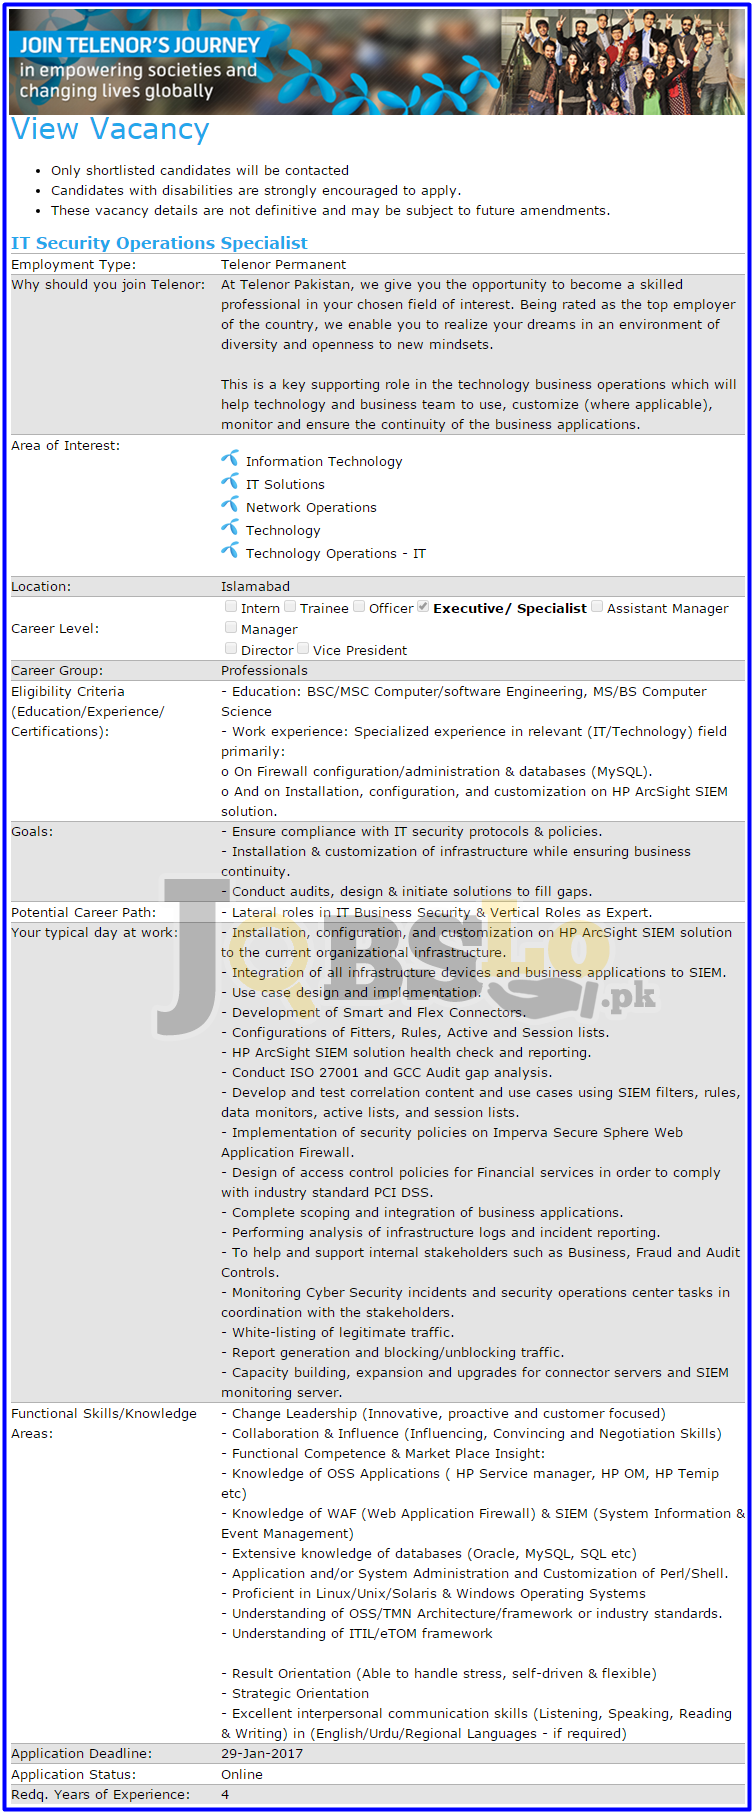 Telenor Islamabad Jobs 2017 Current Employment Opportunities Add